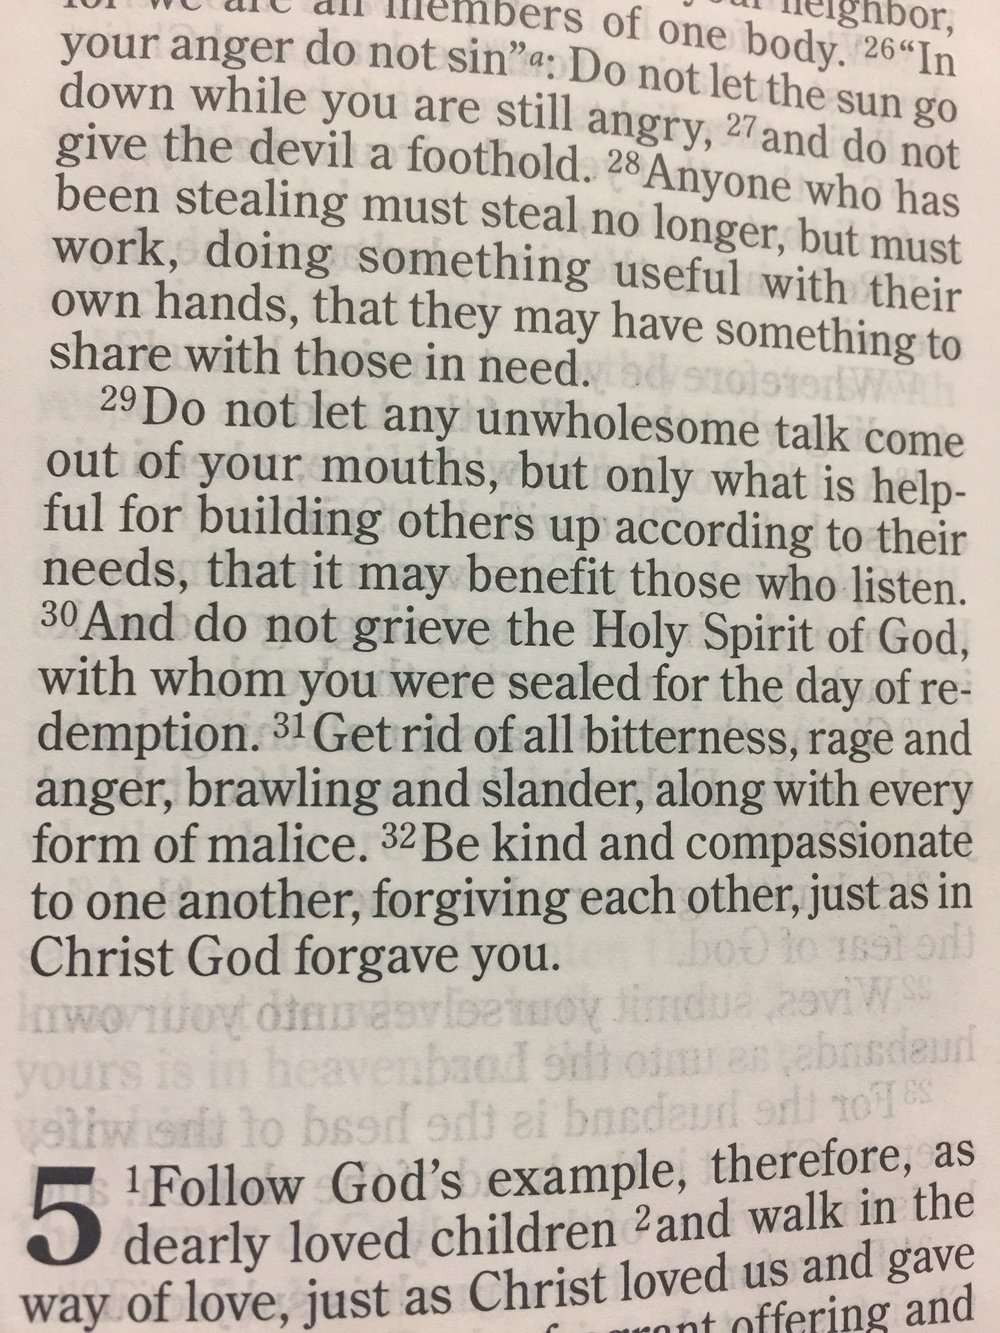 Scripture from our lesson on how to talk to others: Ephesians 4:29.